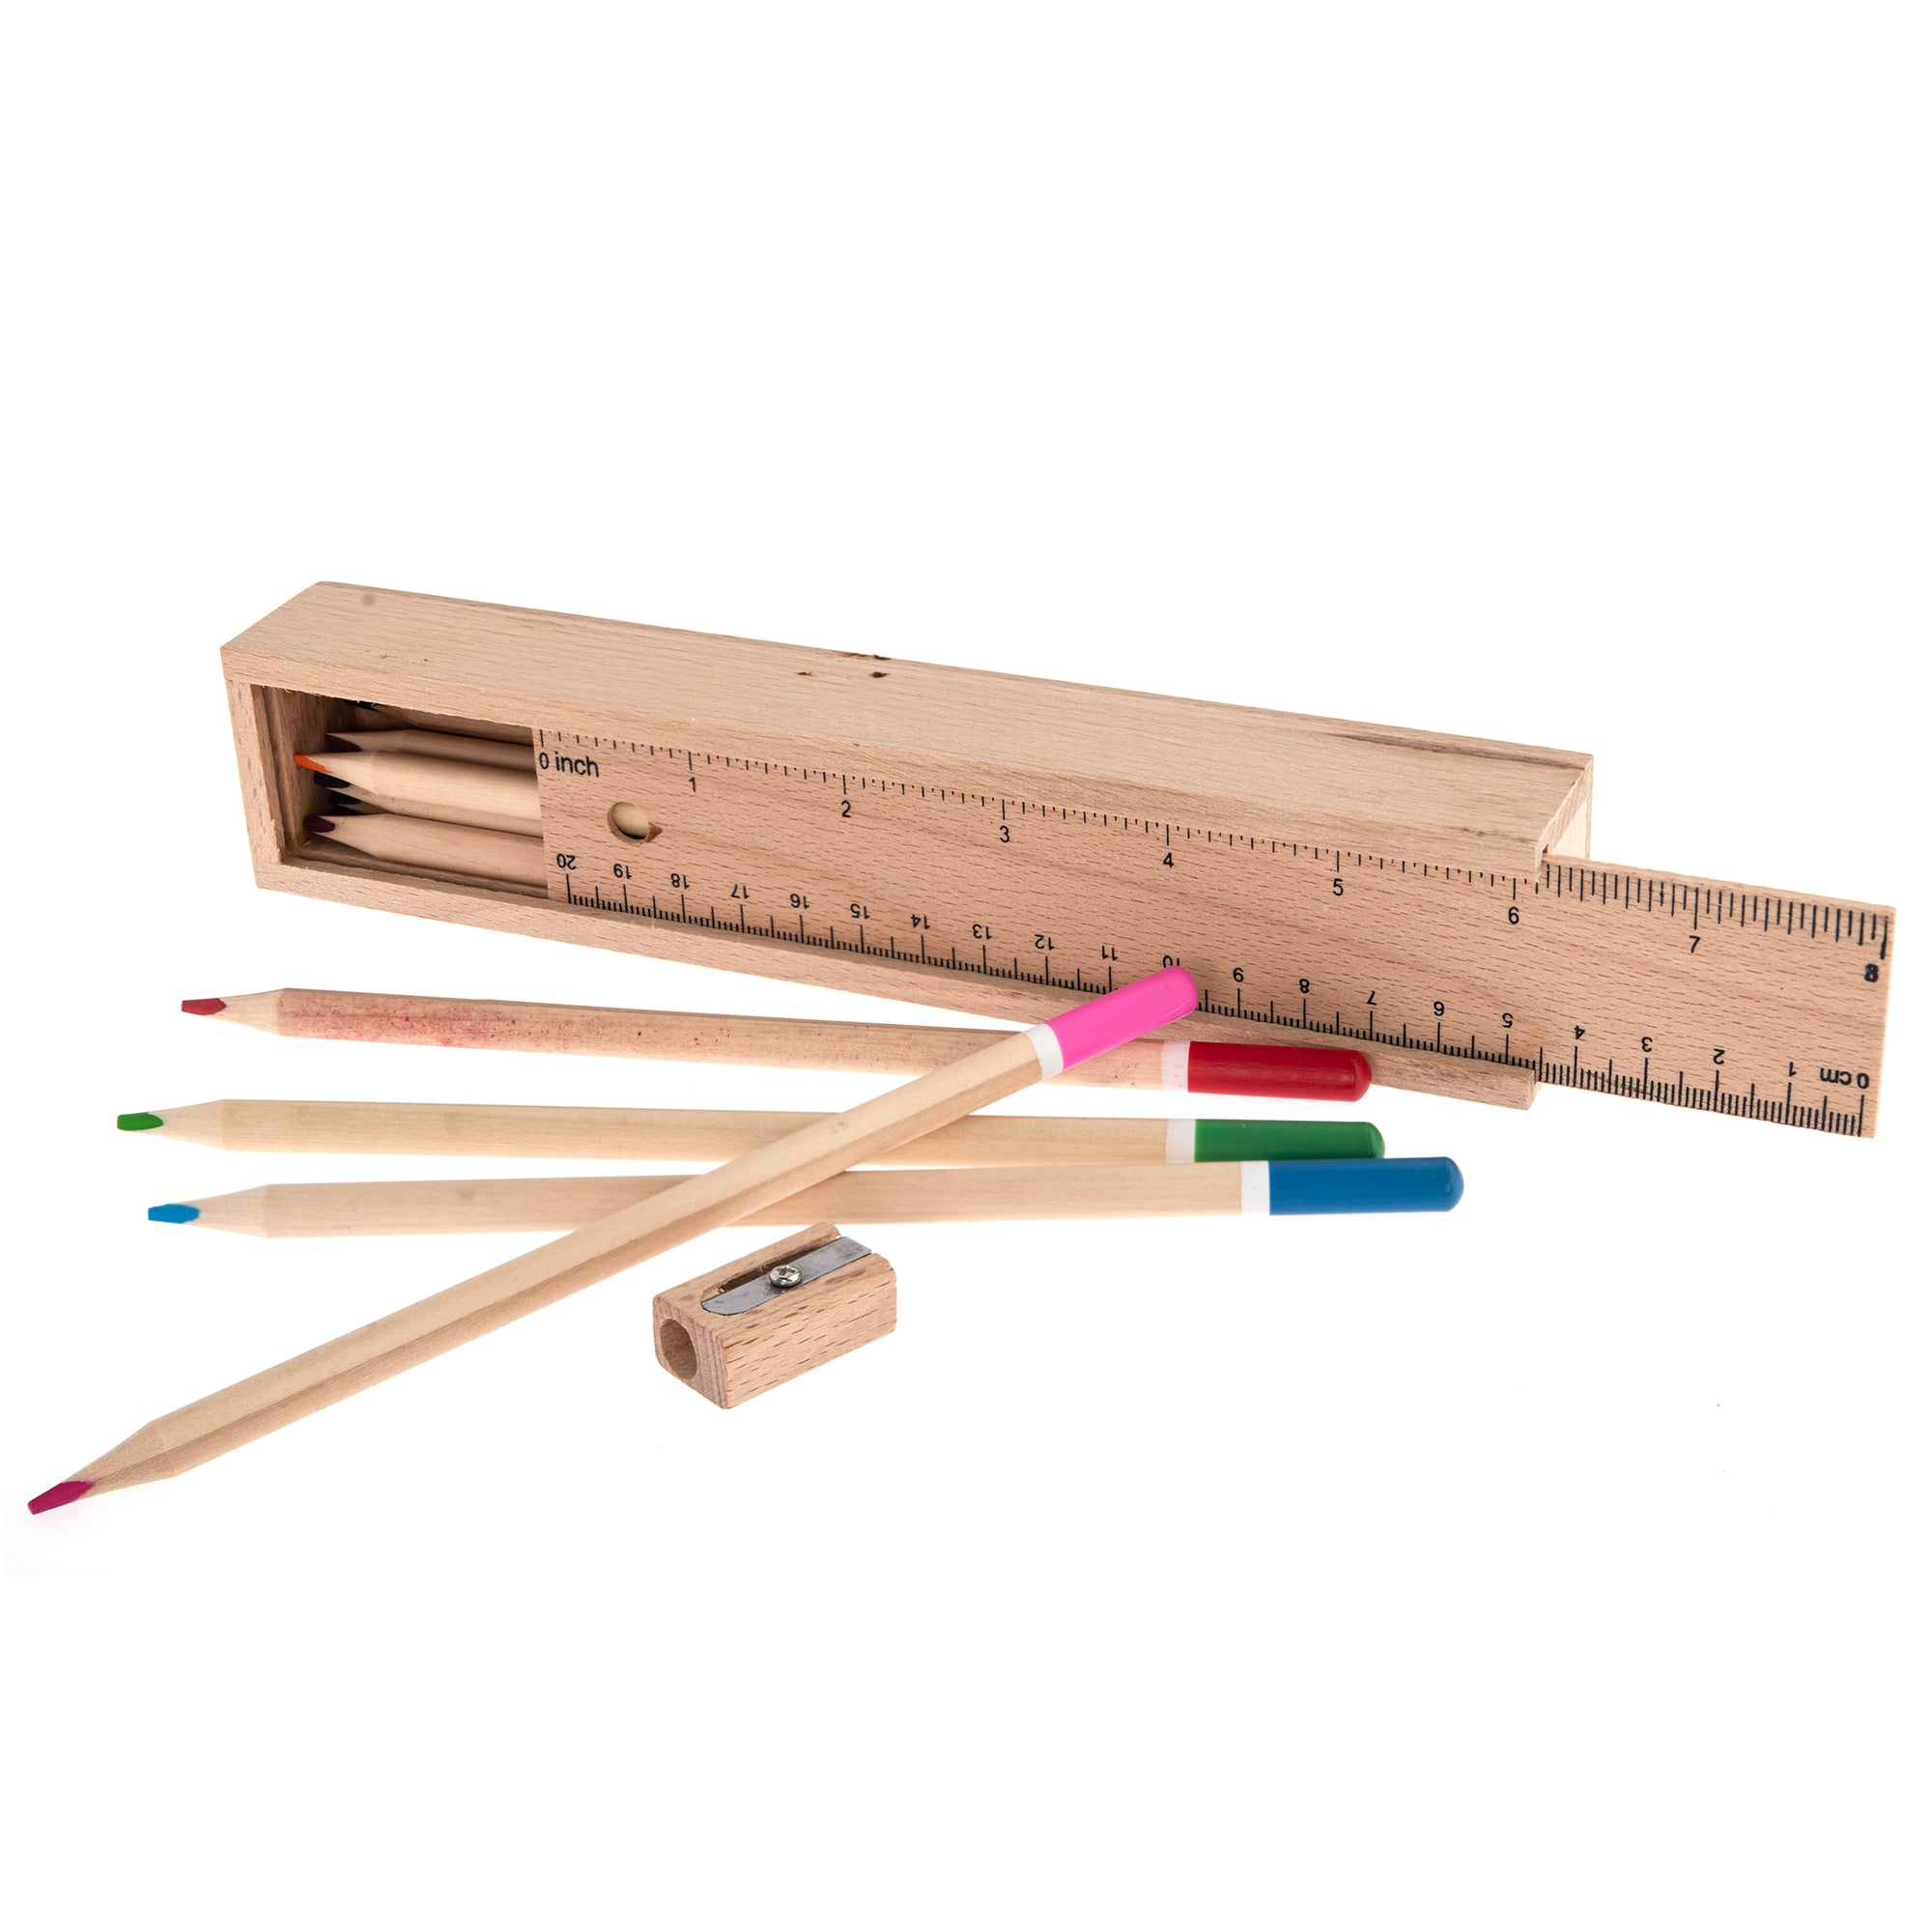 Wood Pencils Case with Pencils